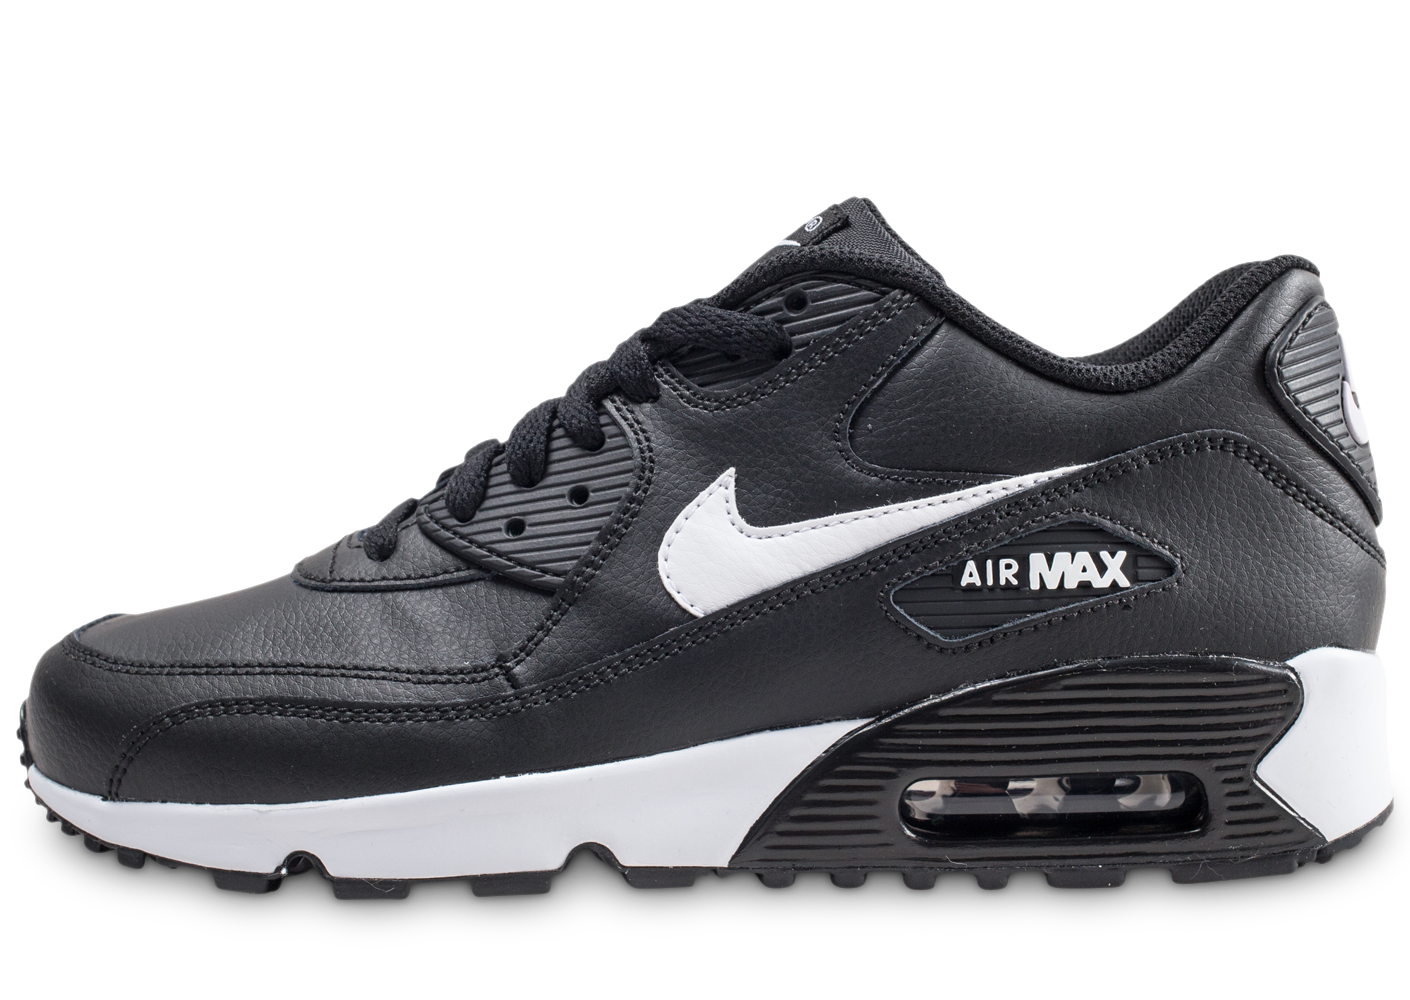 detailed look 87d82 b8835 Nike enfant air max 90 leather noire et blanche.